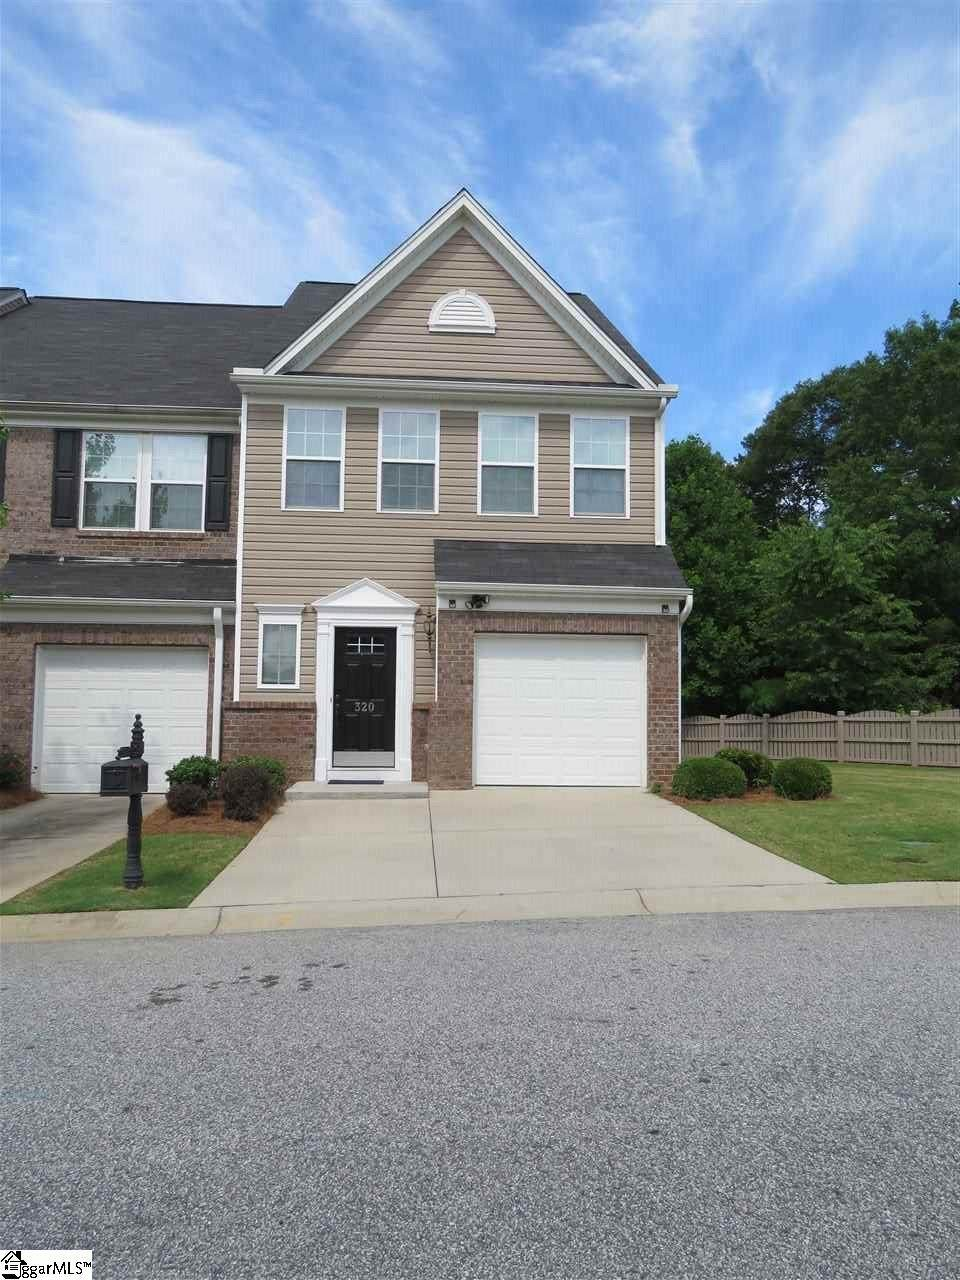 320 Juniper Bend Circle - Photo 1